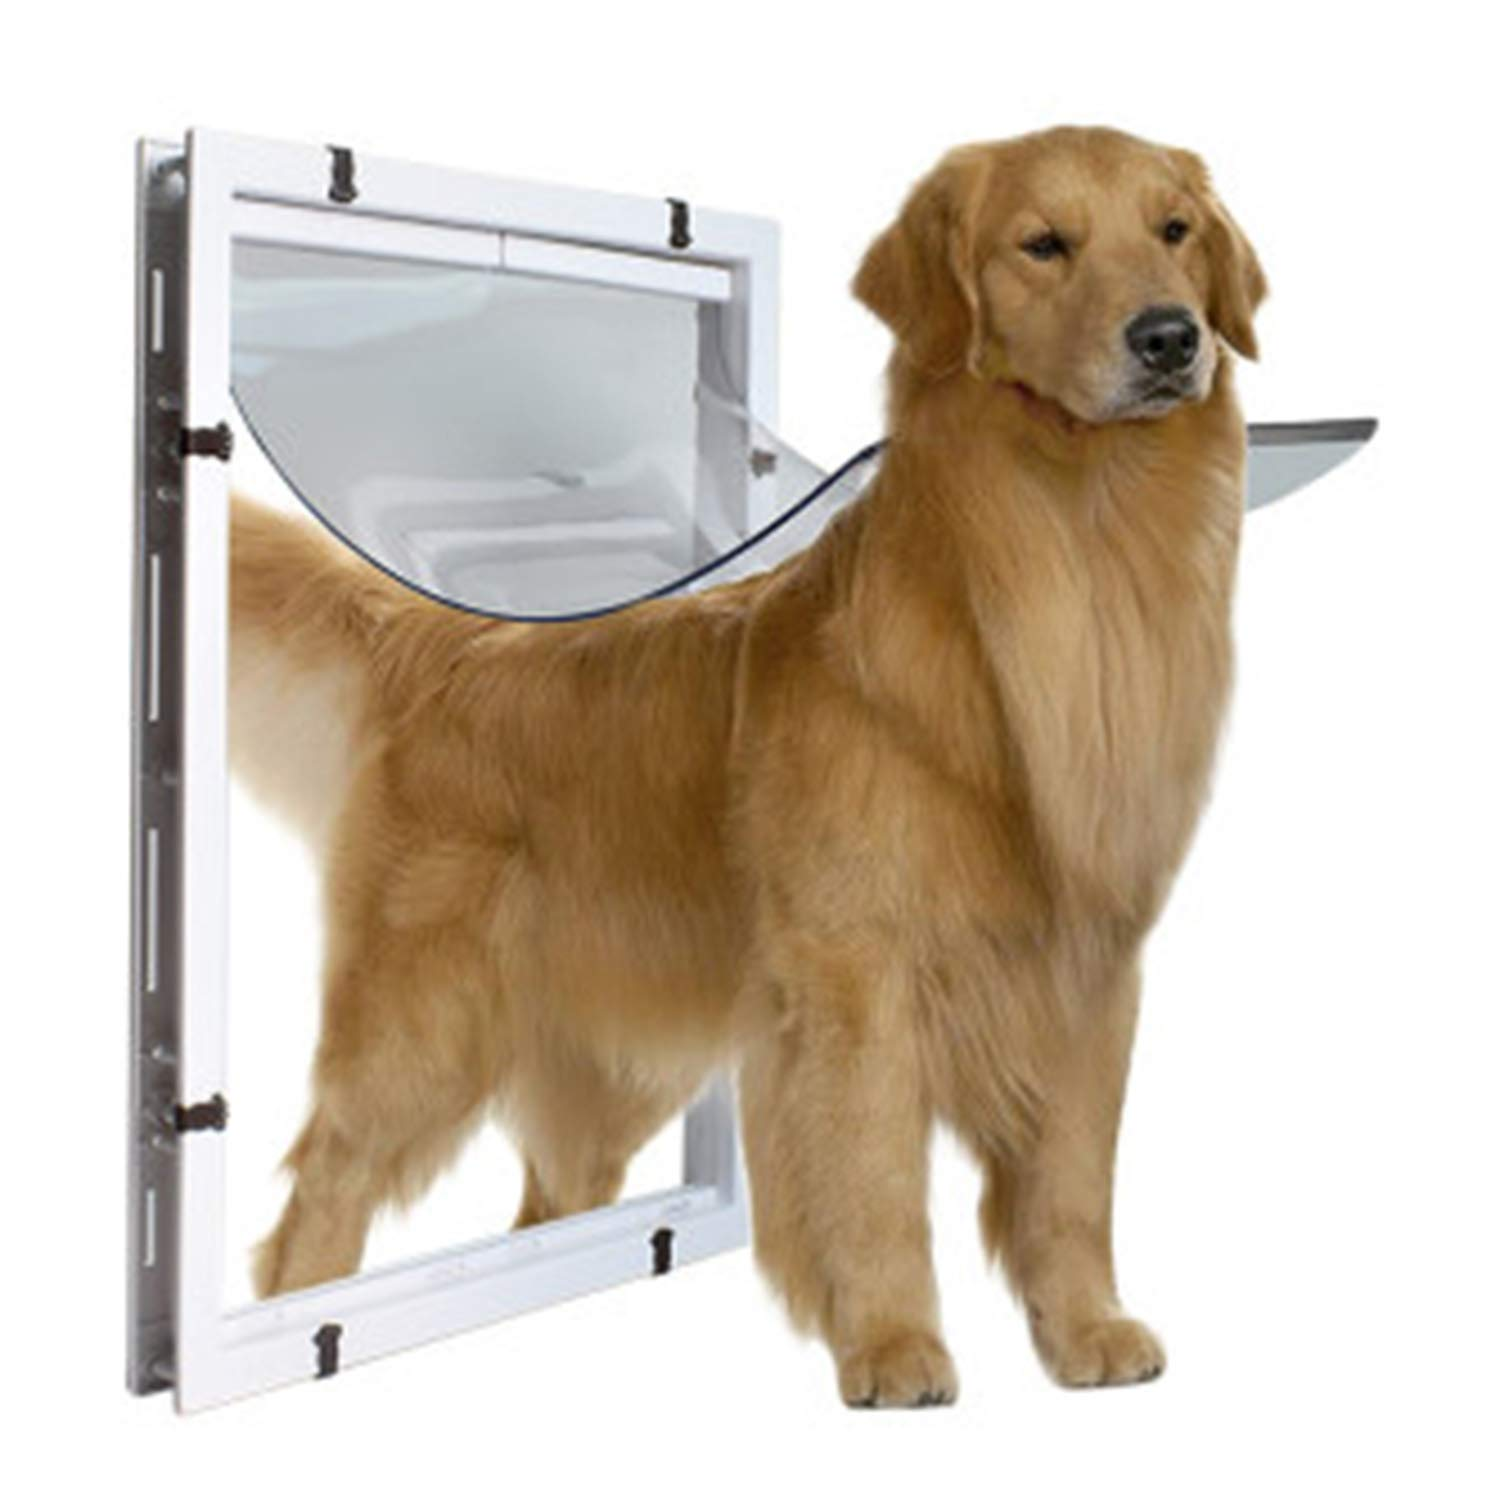 Big Dog Door Extra Large Pet Door Hole golden Hair Collie redtweiler Large Dog In And Out The Door Hole White 59  43  5cm